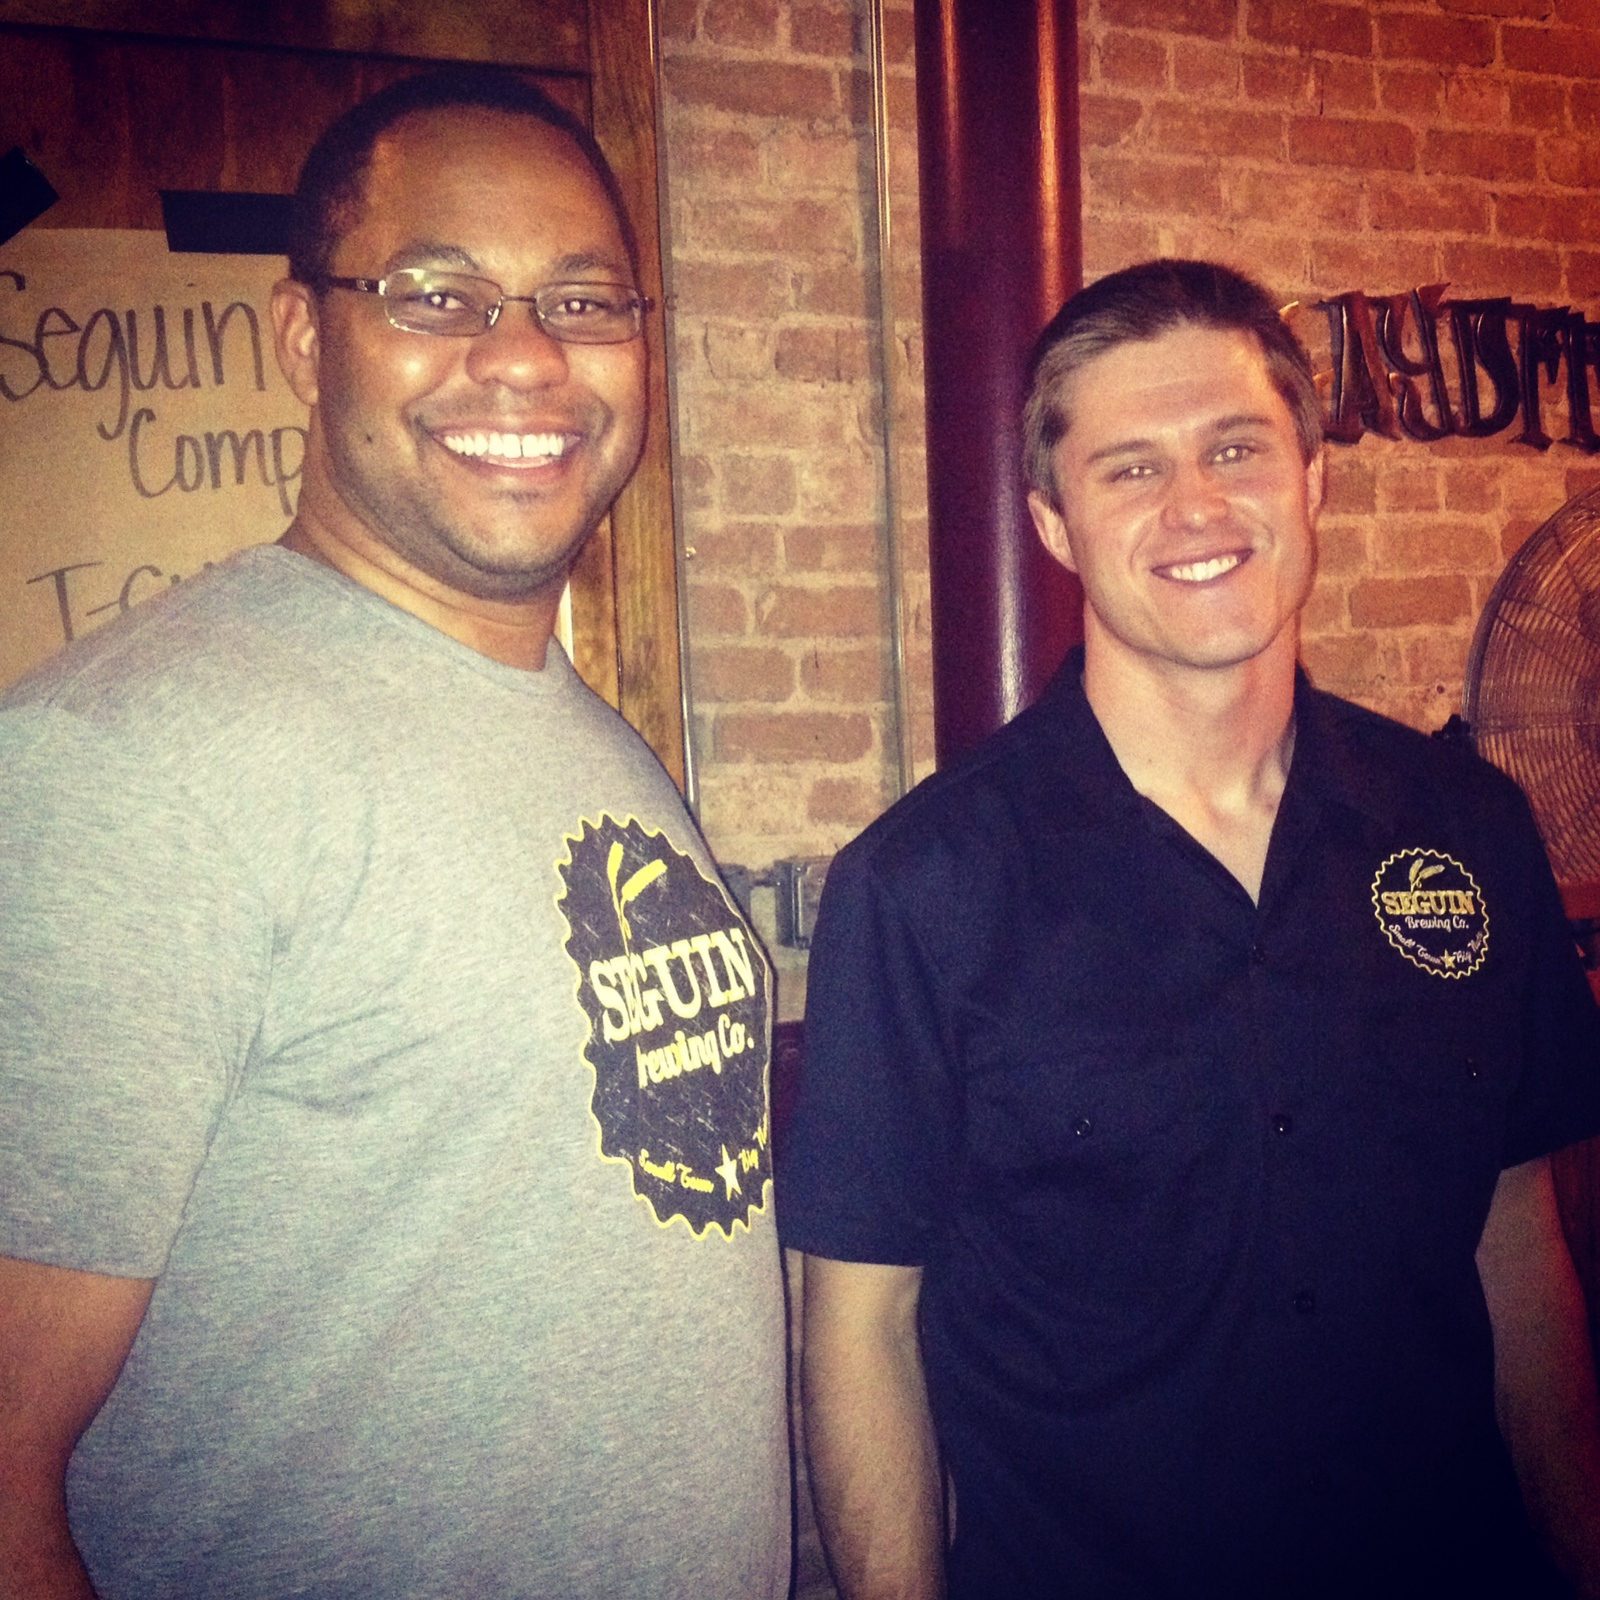 Brian Wallace (right) and Shaun Washington (left) are owners and operators of Seguin Brewing Company.